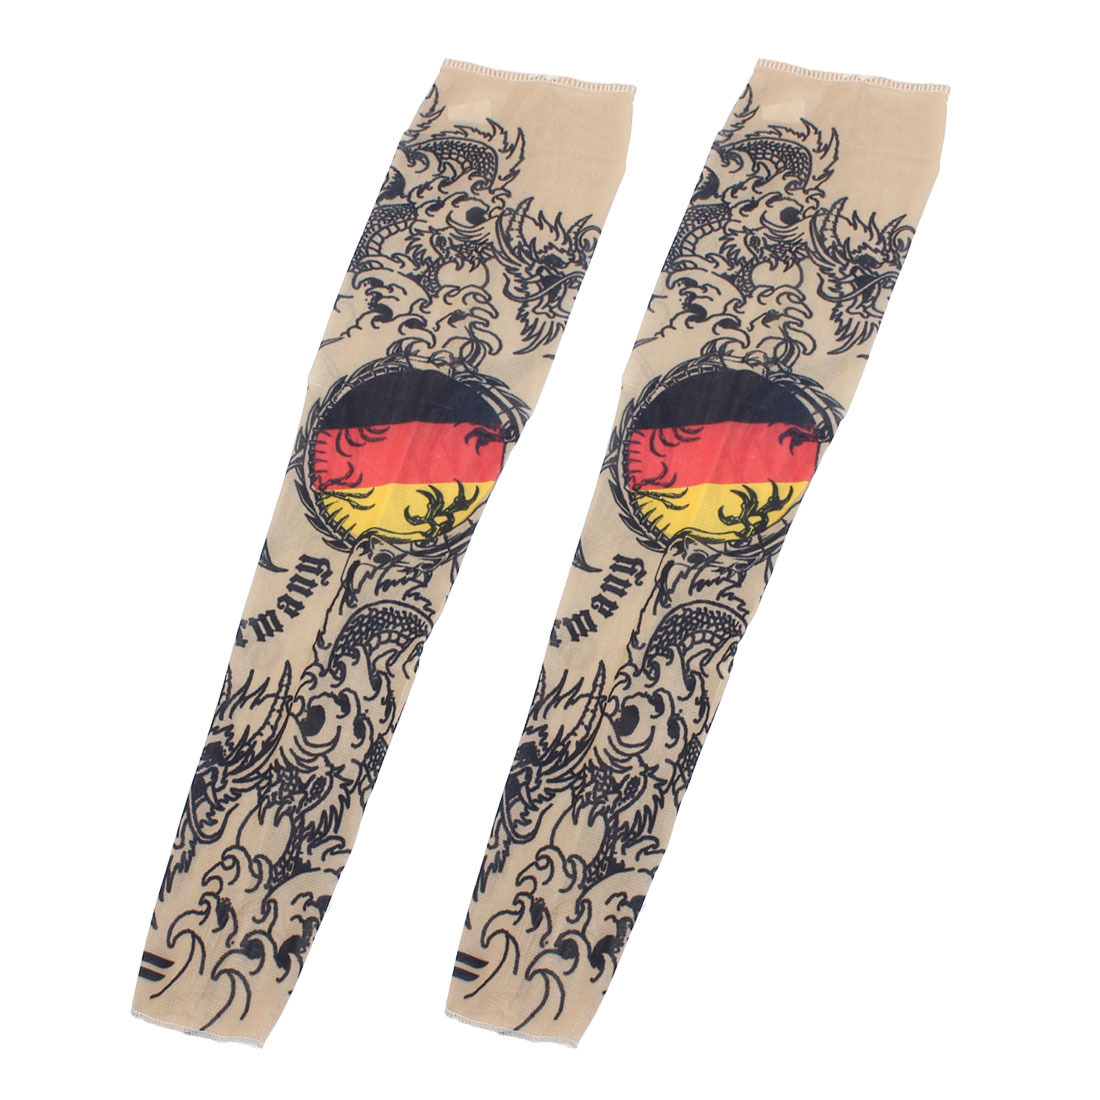 2 Pcs Beige Dargon Pattern Elastic Fake Tattoo Riding Cycling Arm Sleeve Oversleeve